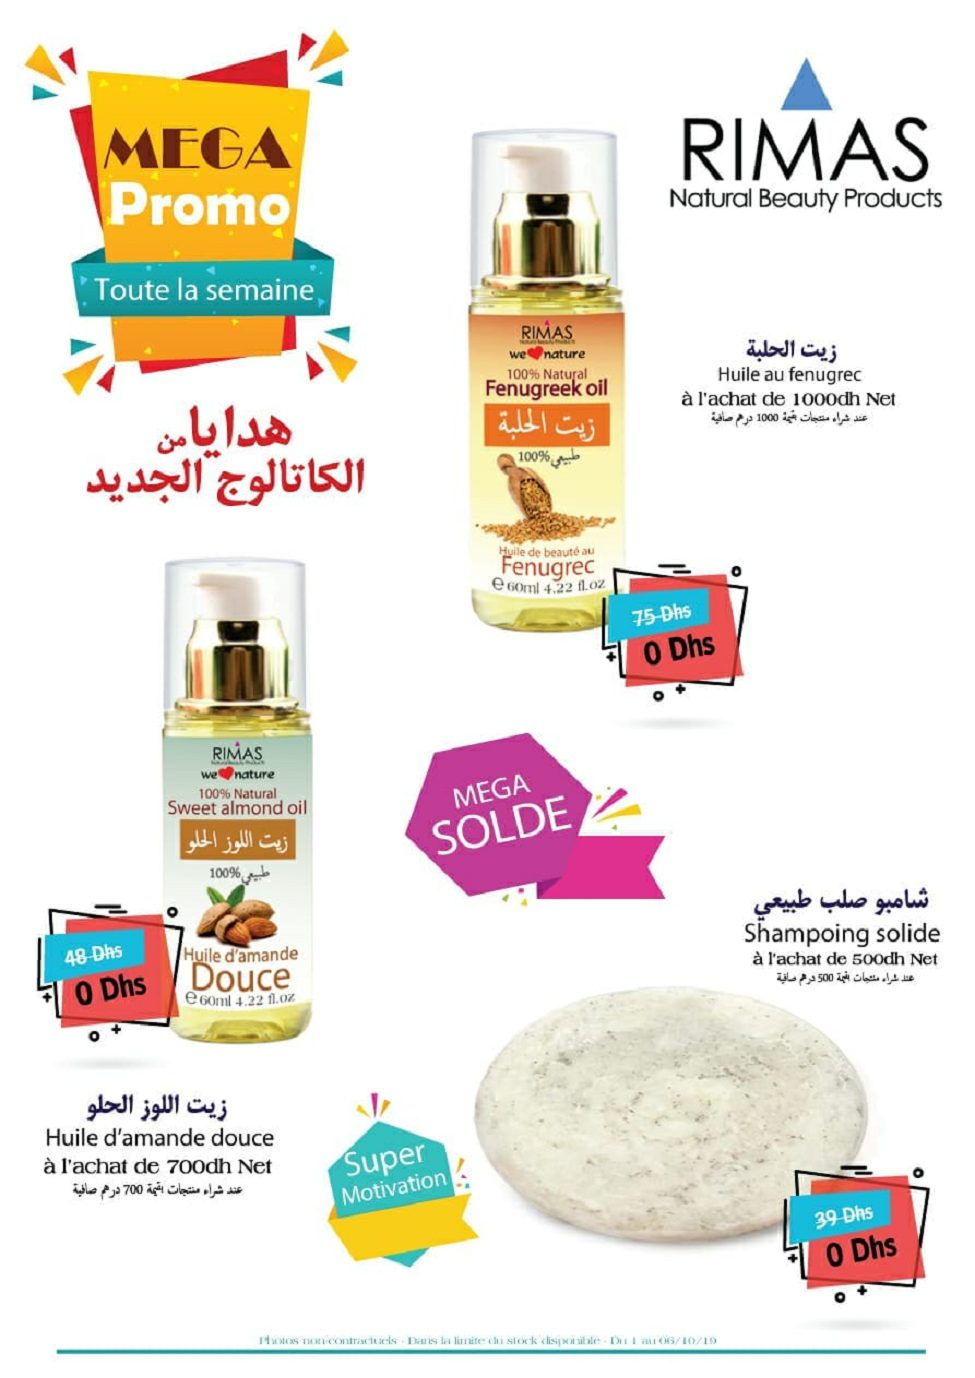 Mega Promo Natural Beauty Products Rimas du 1 au 6 Octobre 2019